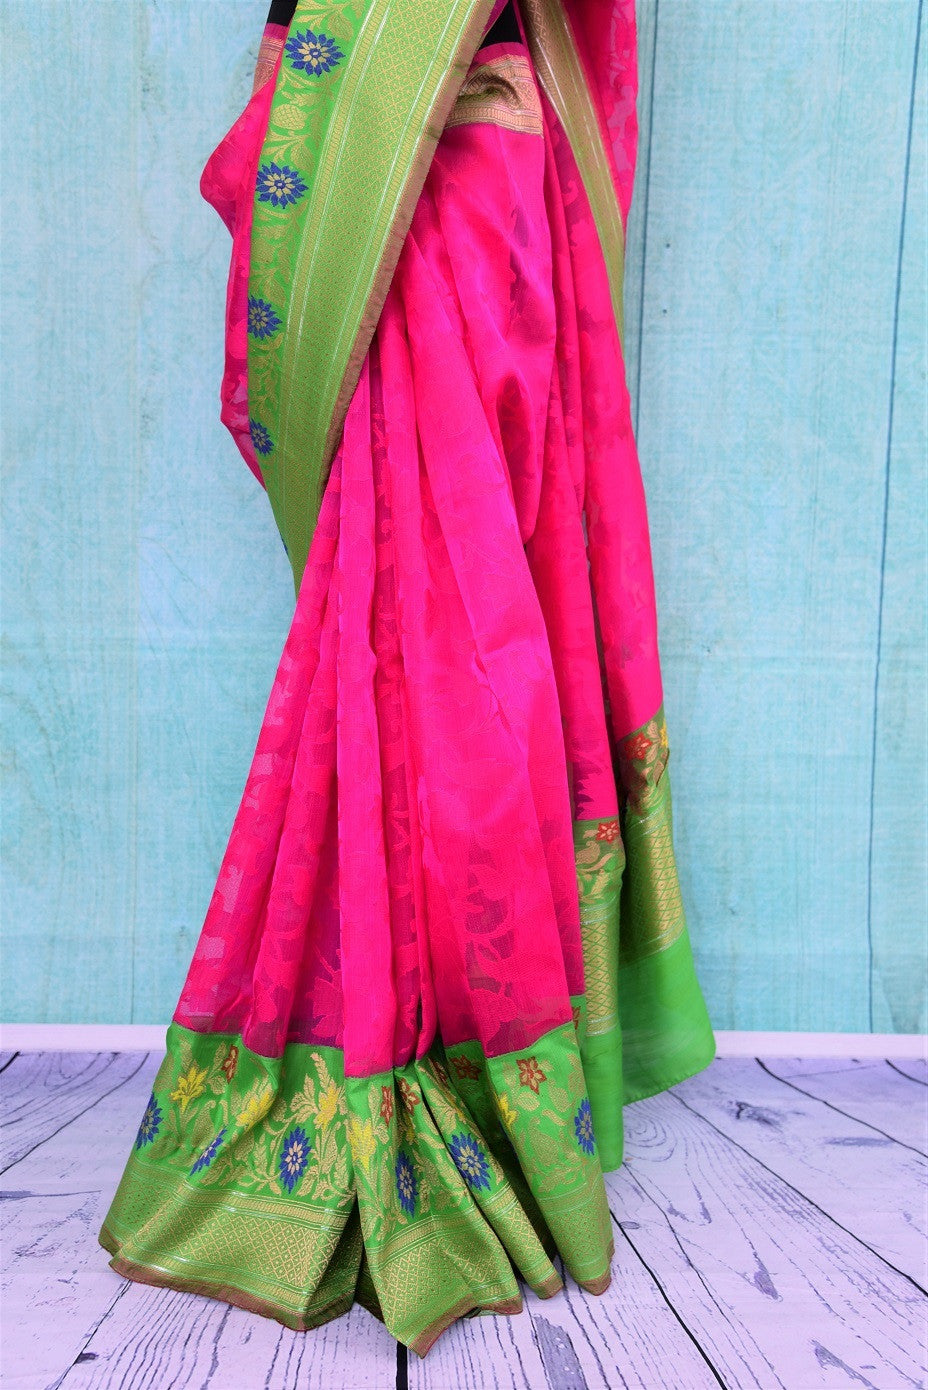 90B969 Vibrant pink matka organza Banarasi saree with a green border with a pop of blue. The festive wear saree is available at our Indian wear store online in USA. This beautiful saree is absolutely not to be missed!